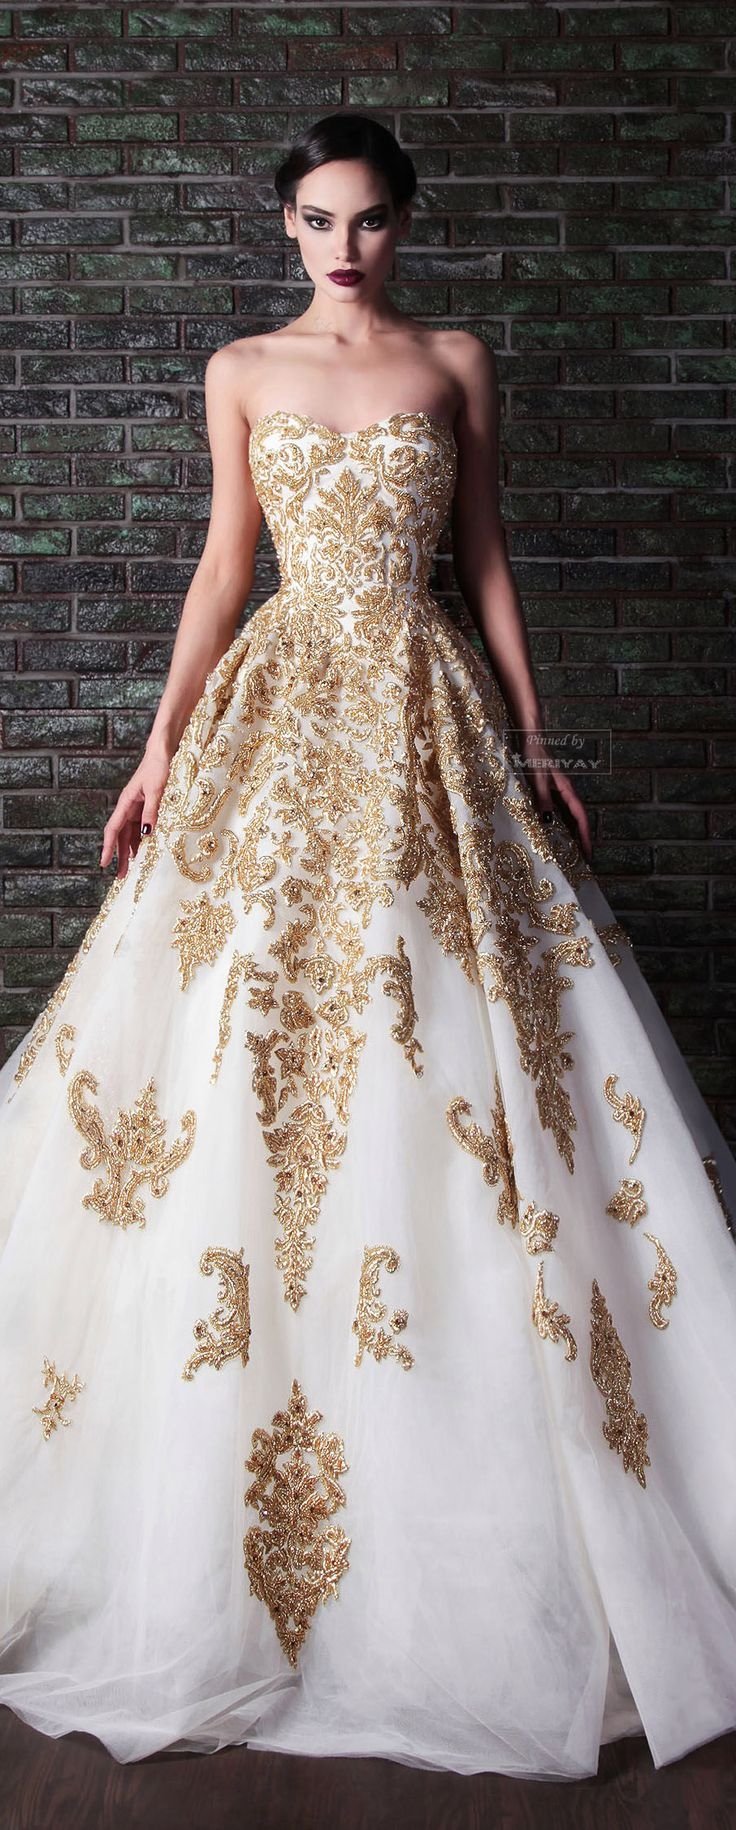 Someday when I get married my dress will have gold detailing just like this, yus